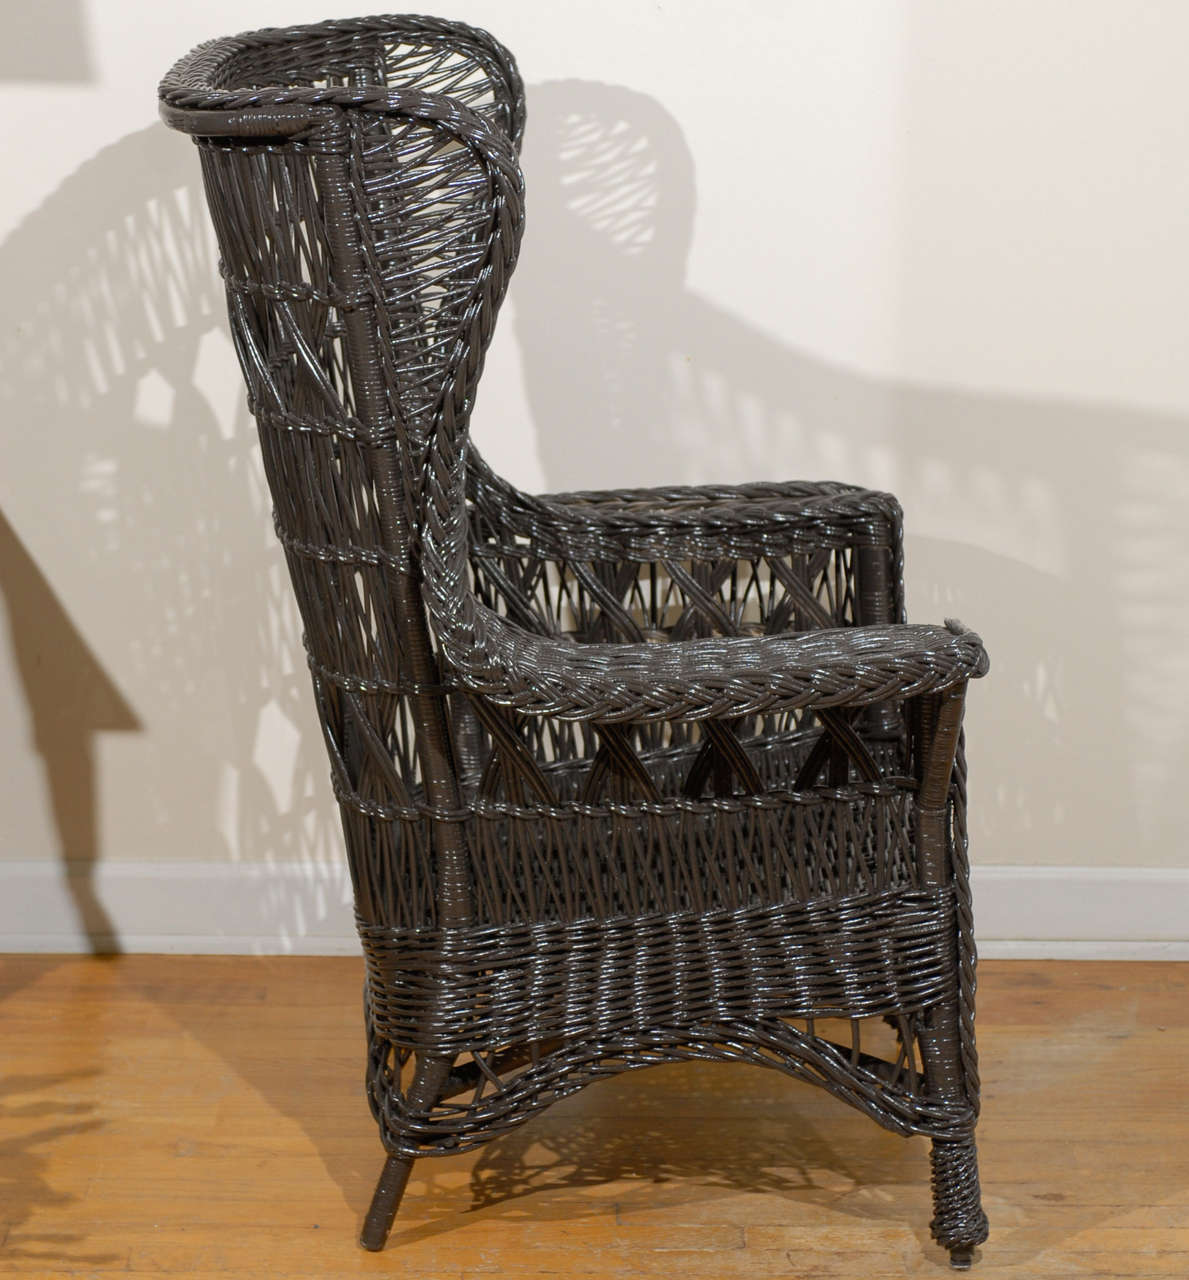 Antique American Wicker Wing Chair with Magazine Pocket 9